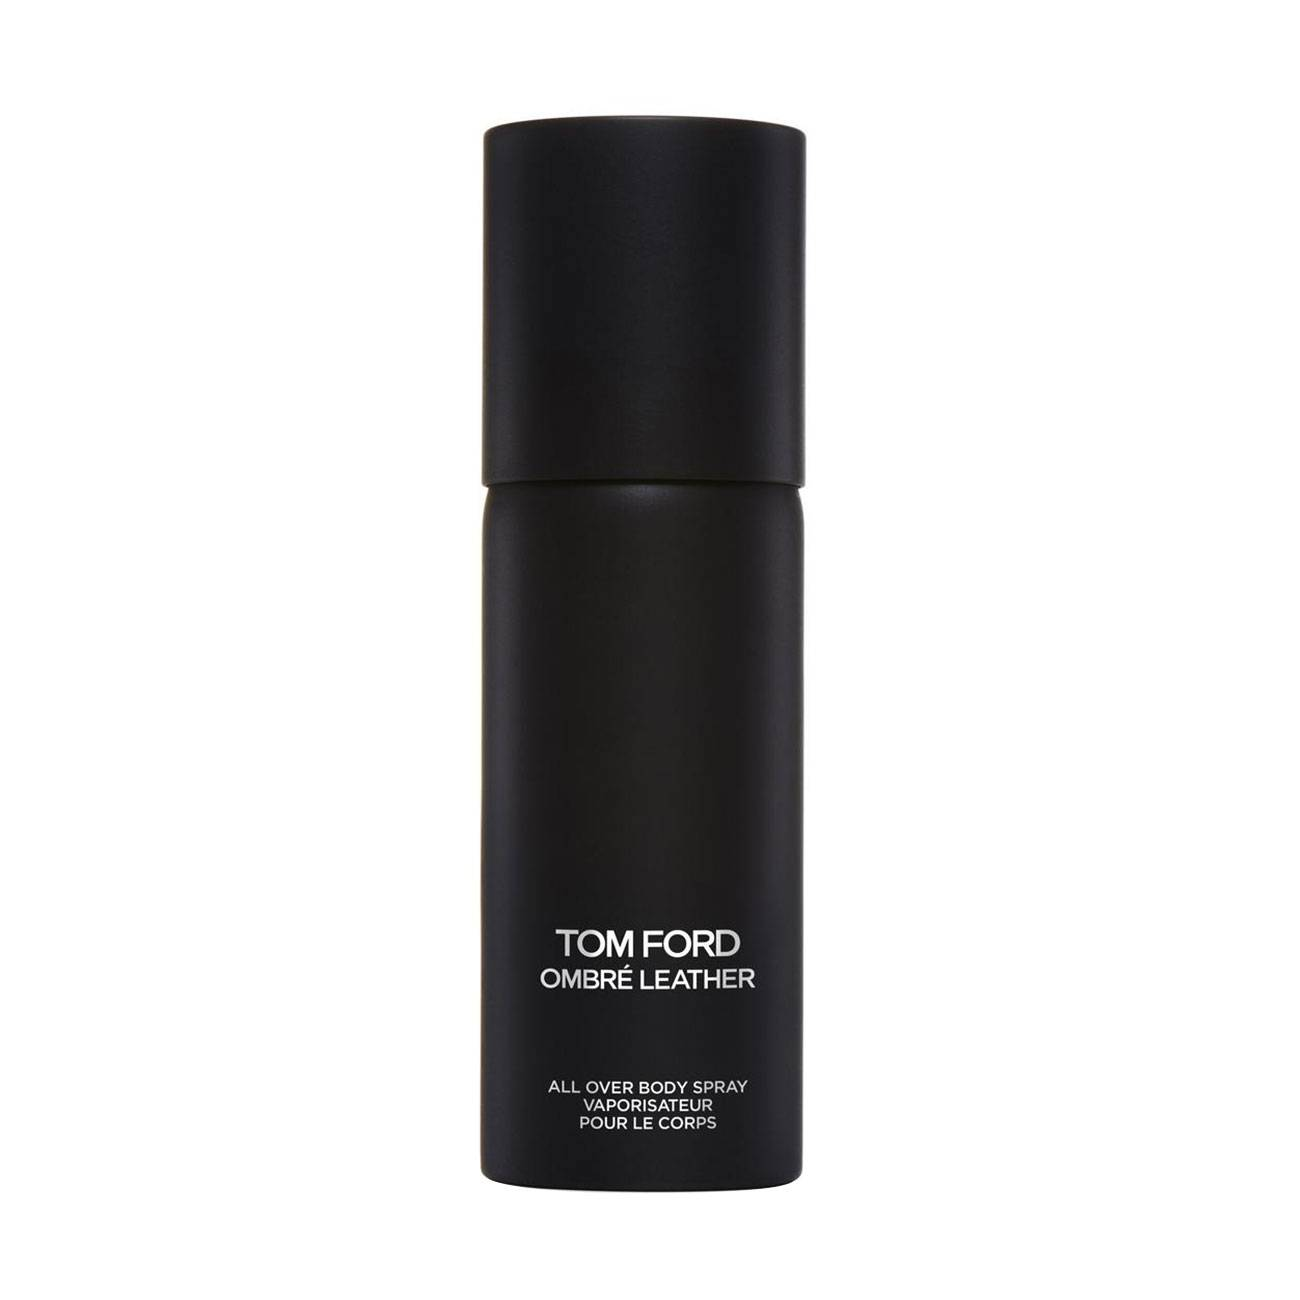 Ombre Leather All Over Body Spray 150ml Tom Ford imagine 2021 bestvalue.eu